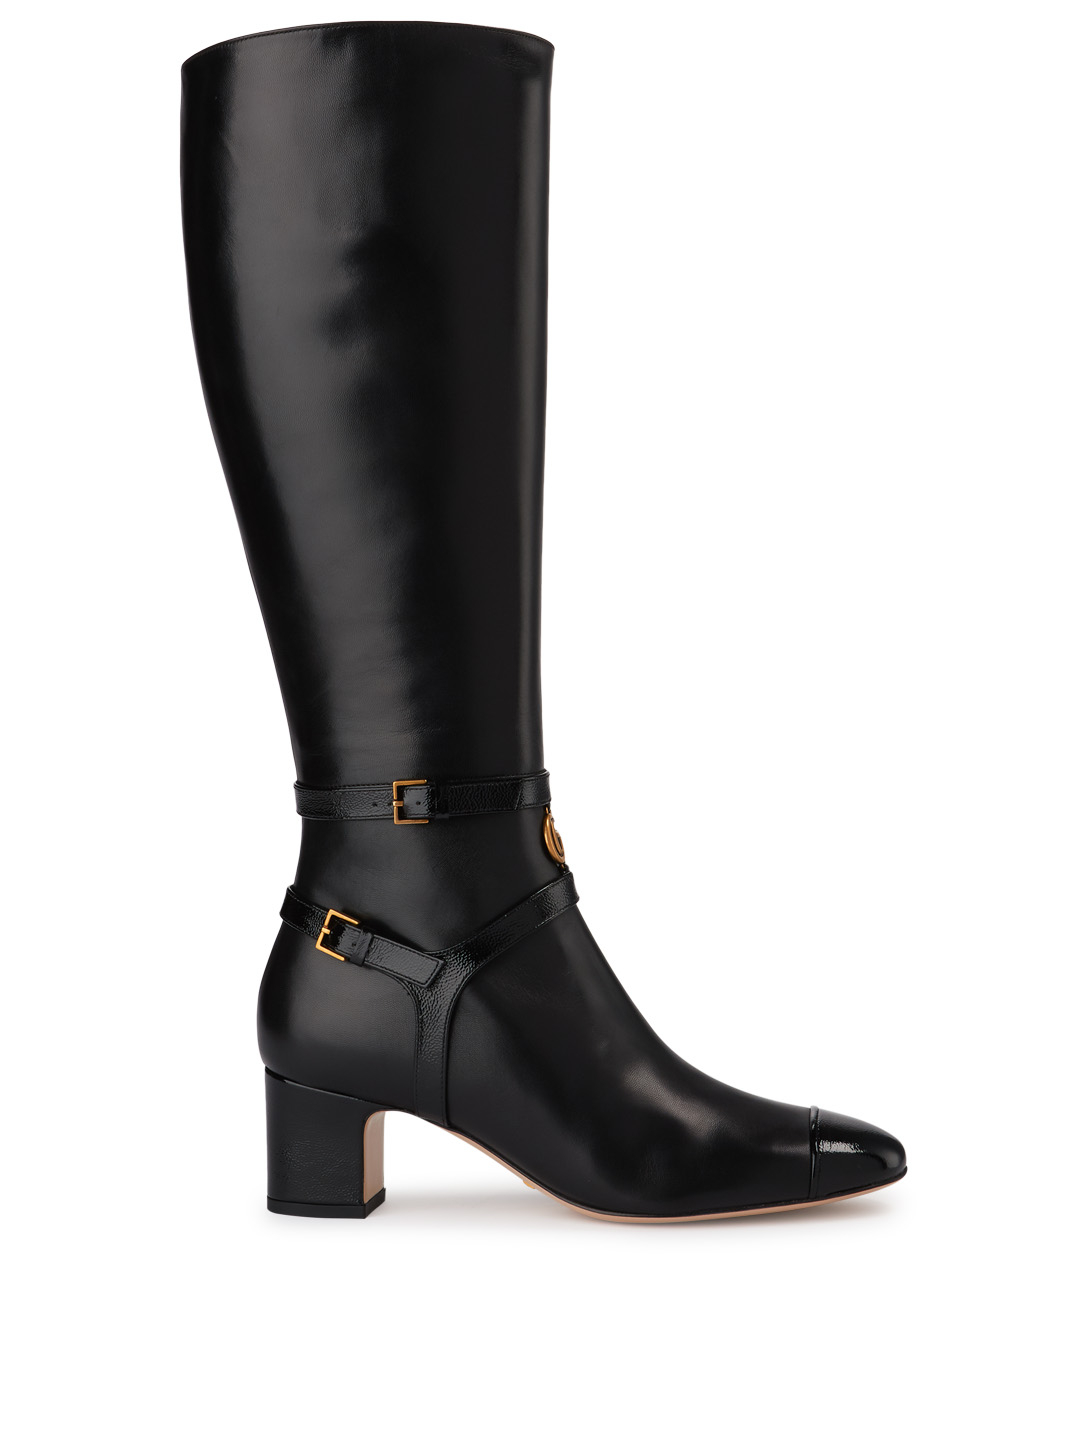 GUCCI Geraldine Leather Knee-High Cap-Toe Boots Womens Black